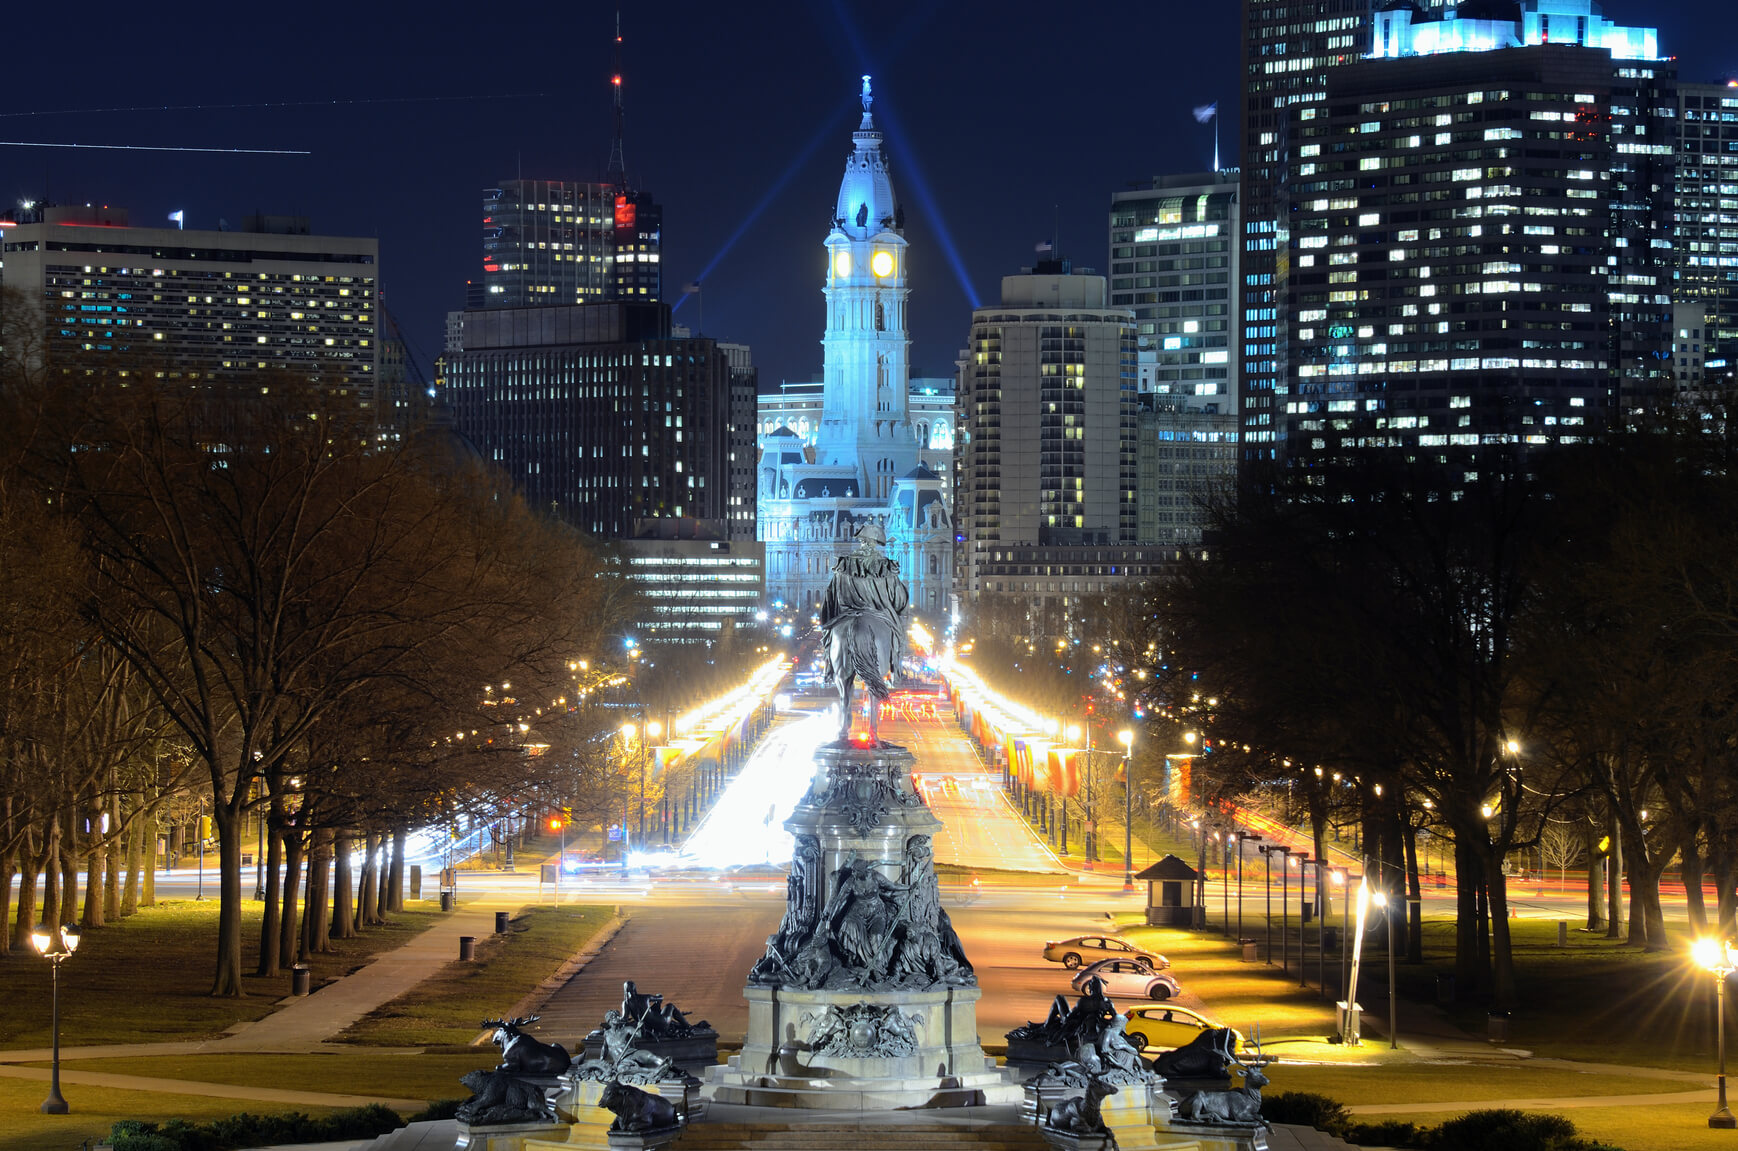 XMAS: Non-stop from Chicago to Philadelphia (& vice versa) for only $71 roundtrip (Nov-Jan dates)